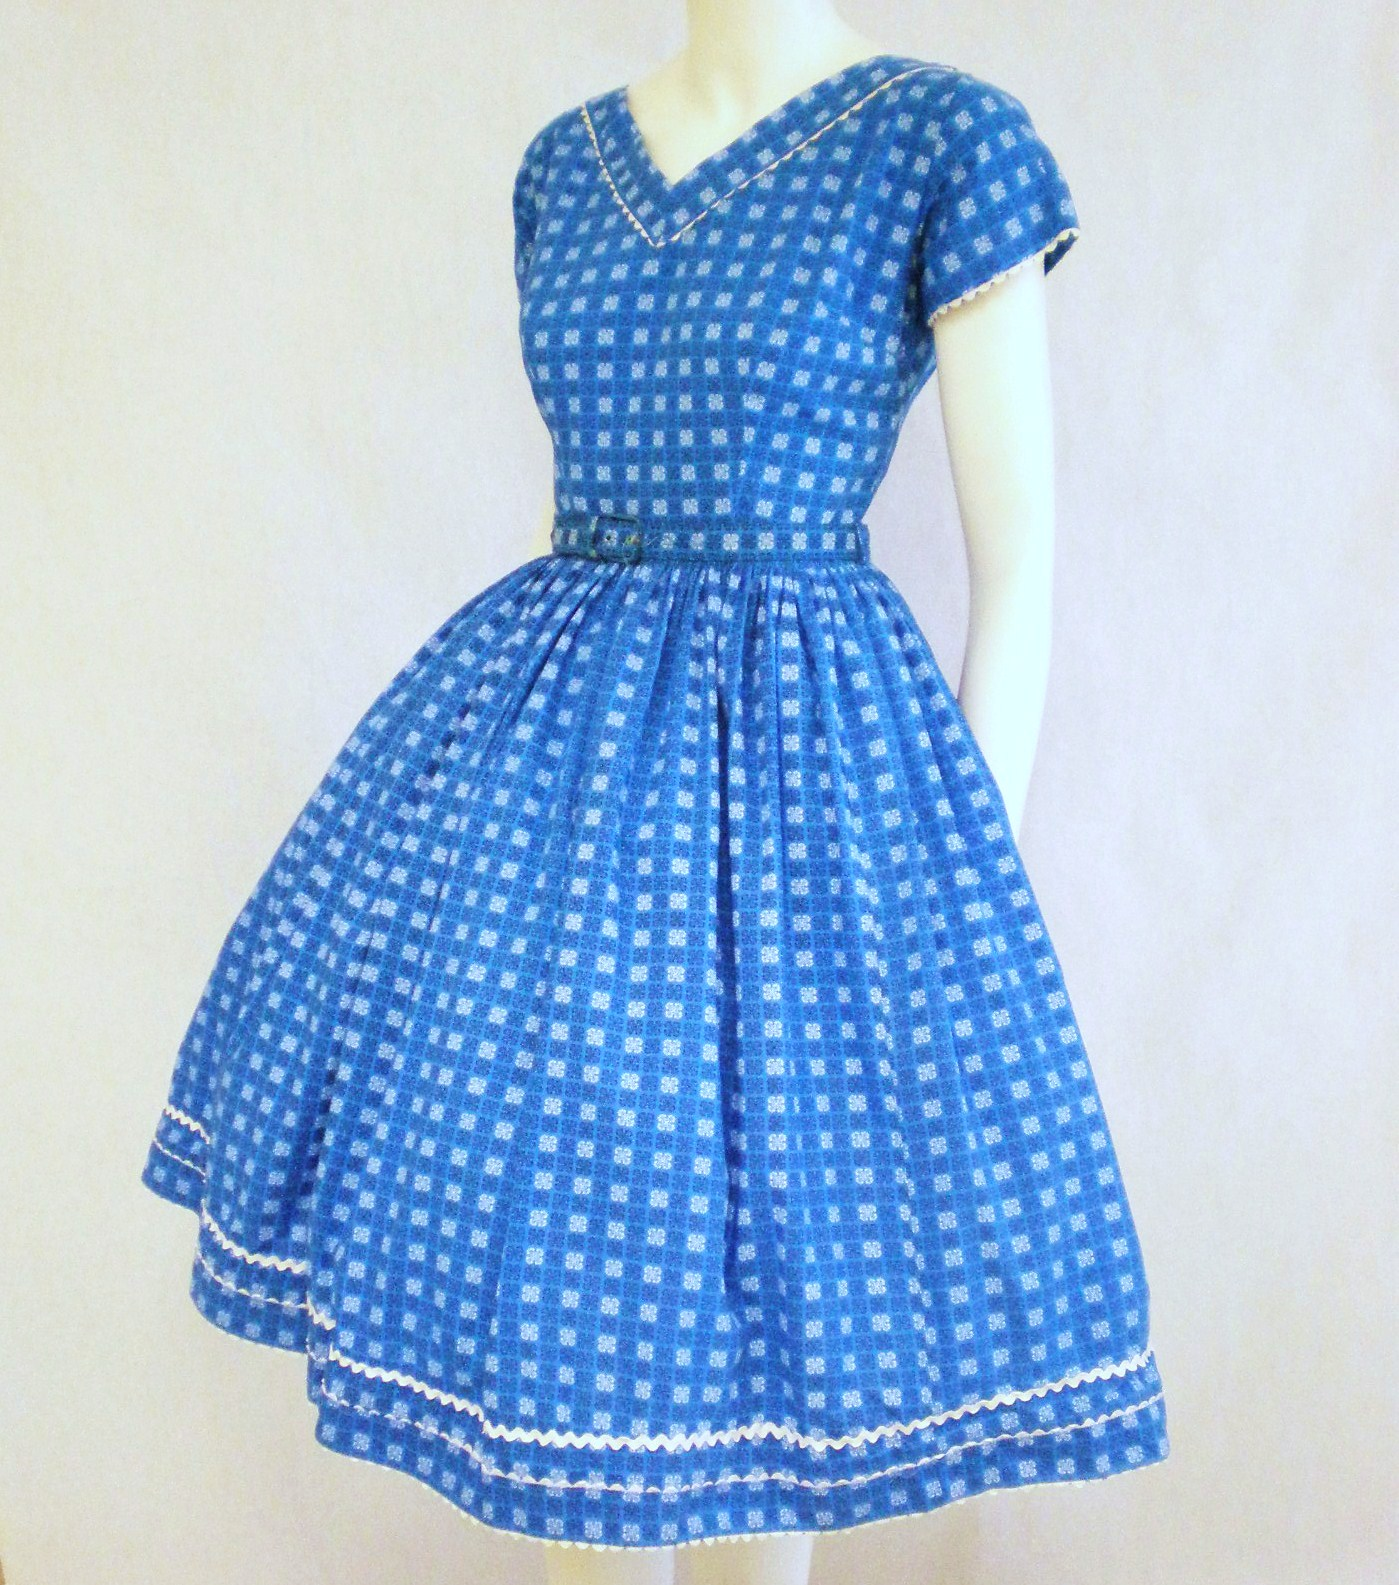 dress from the 1950s was